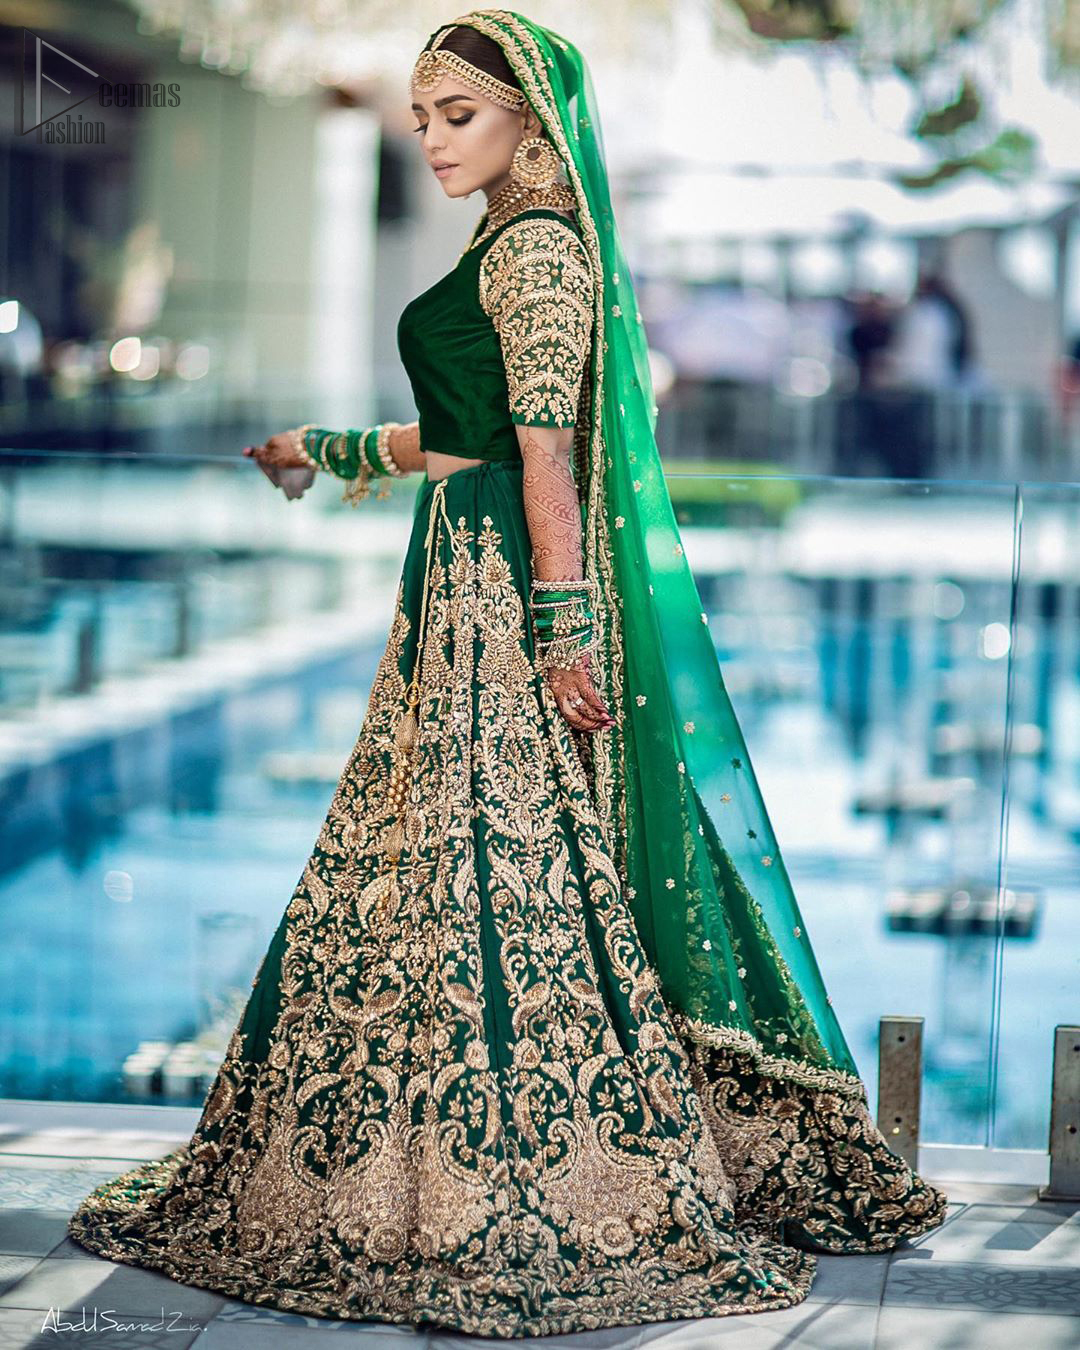 This artisanal piece is rendered in grace and timelessness. This outfit makes a statement in this stunningly floraison, perfect blend of glamour and tradition with outstanding craftsmanship and gorgeous detailing. This mehndi dress in a dreamy shade of green, enhanced with hand embellishments on neckline and sleeves. The wide flared lehenga is an example of remarkable handiwork with a lot of attention to detail. The sculptured embroidery is in the shade of golden. Complete the look with bottle green organza dupatta emphasized with tiny floral motifs on the ground and four sided embellished border.